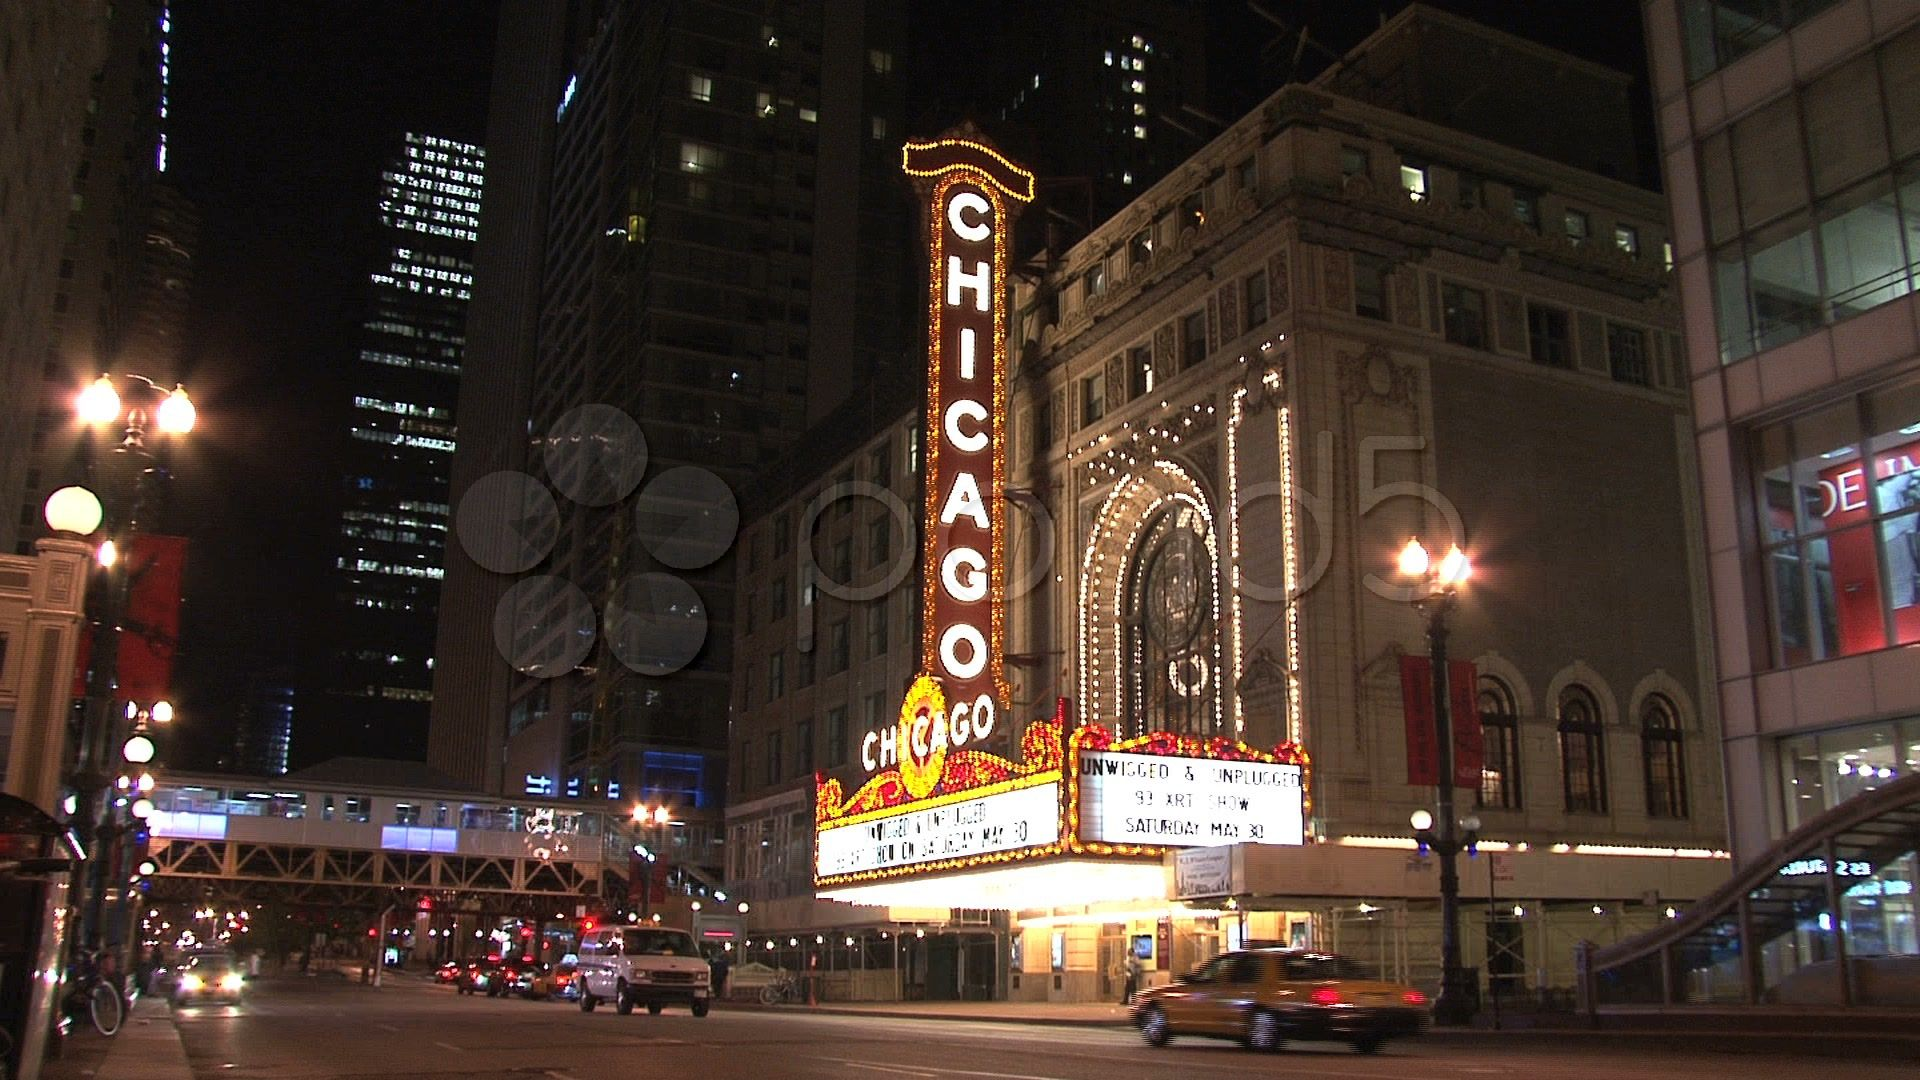 Chicago sign at Night - Stock Footage | by TravelTelly